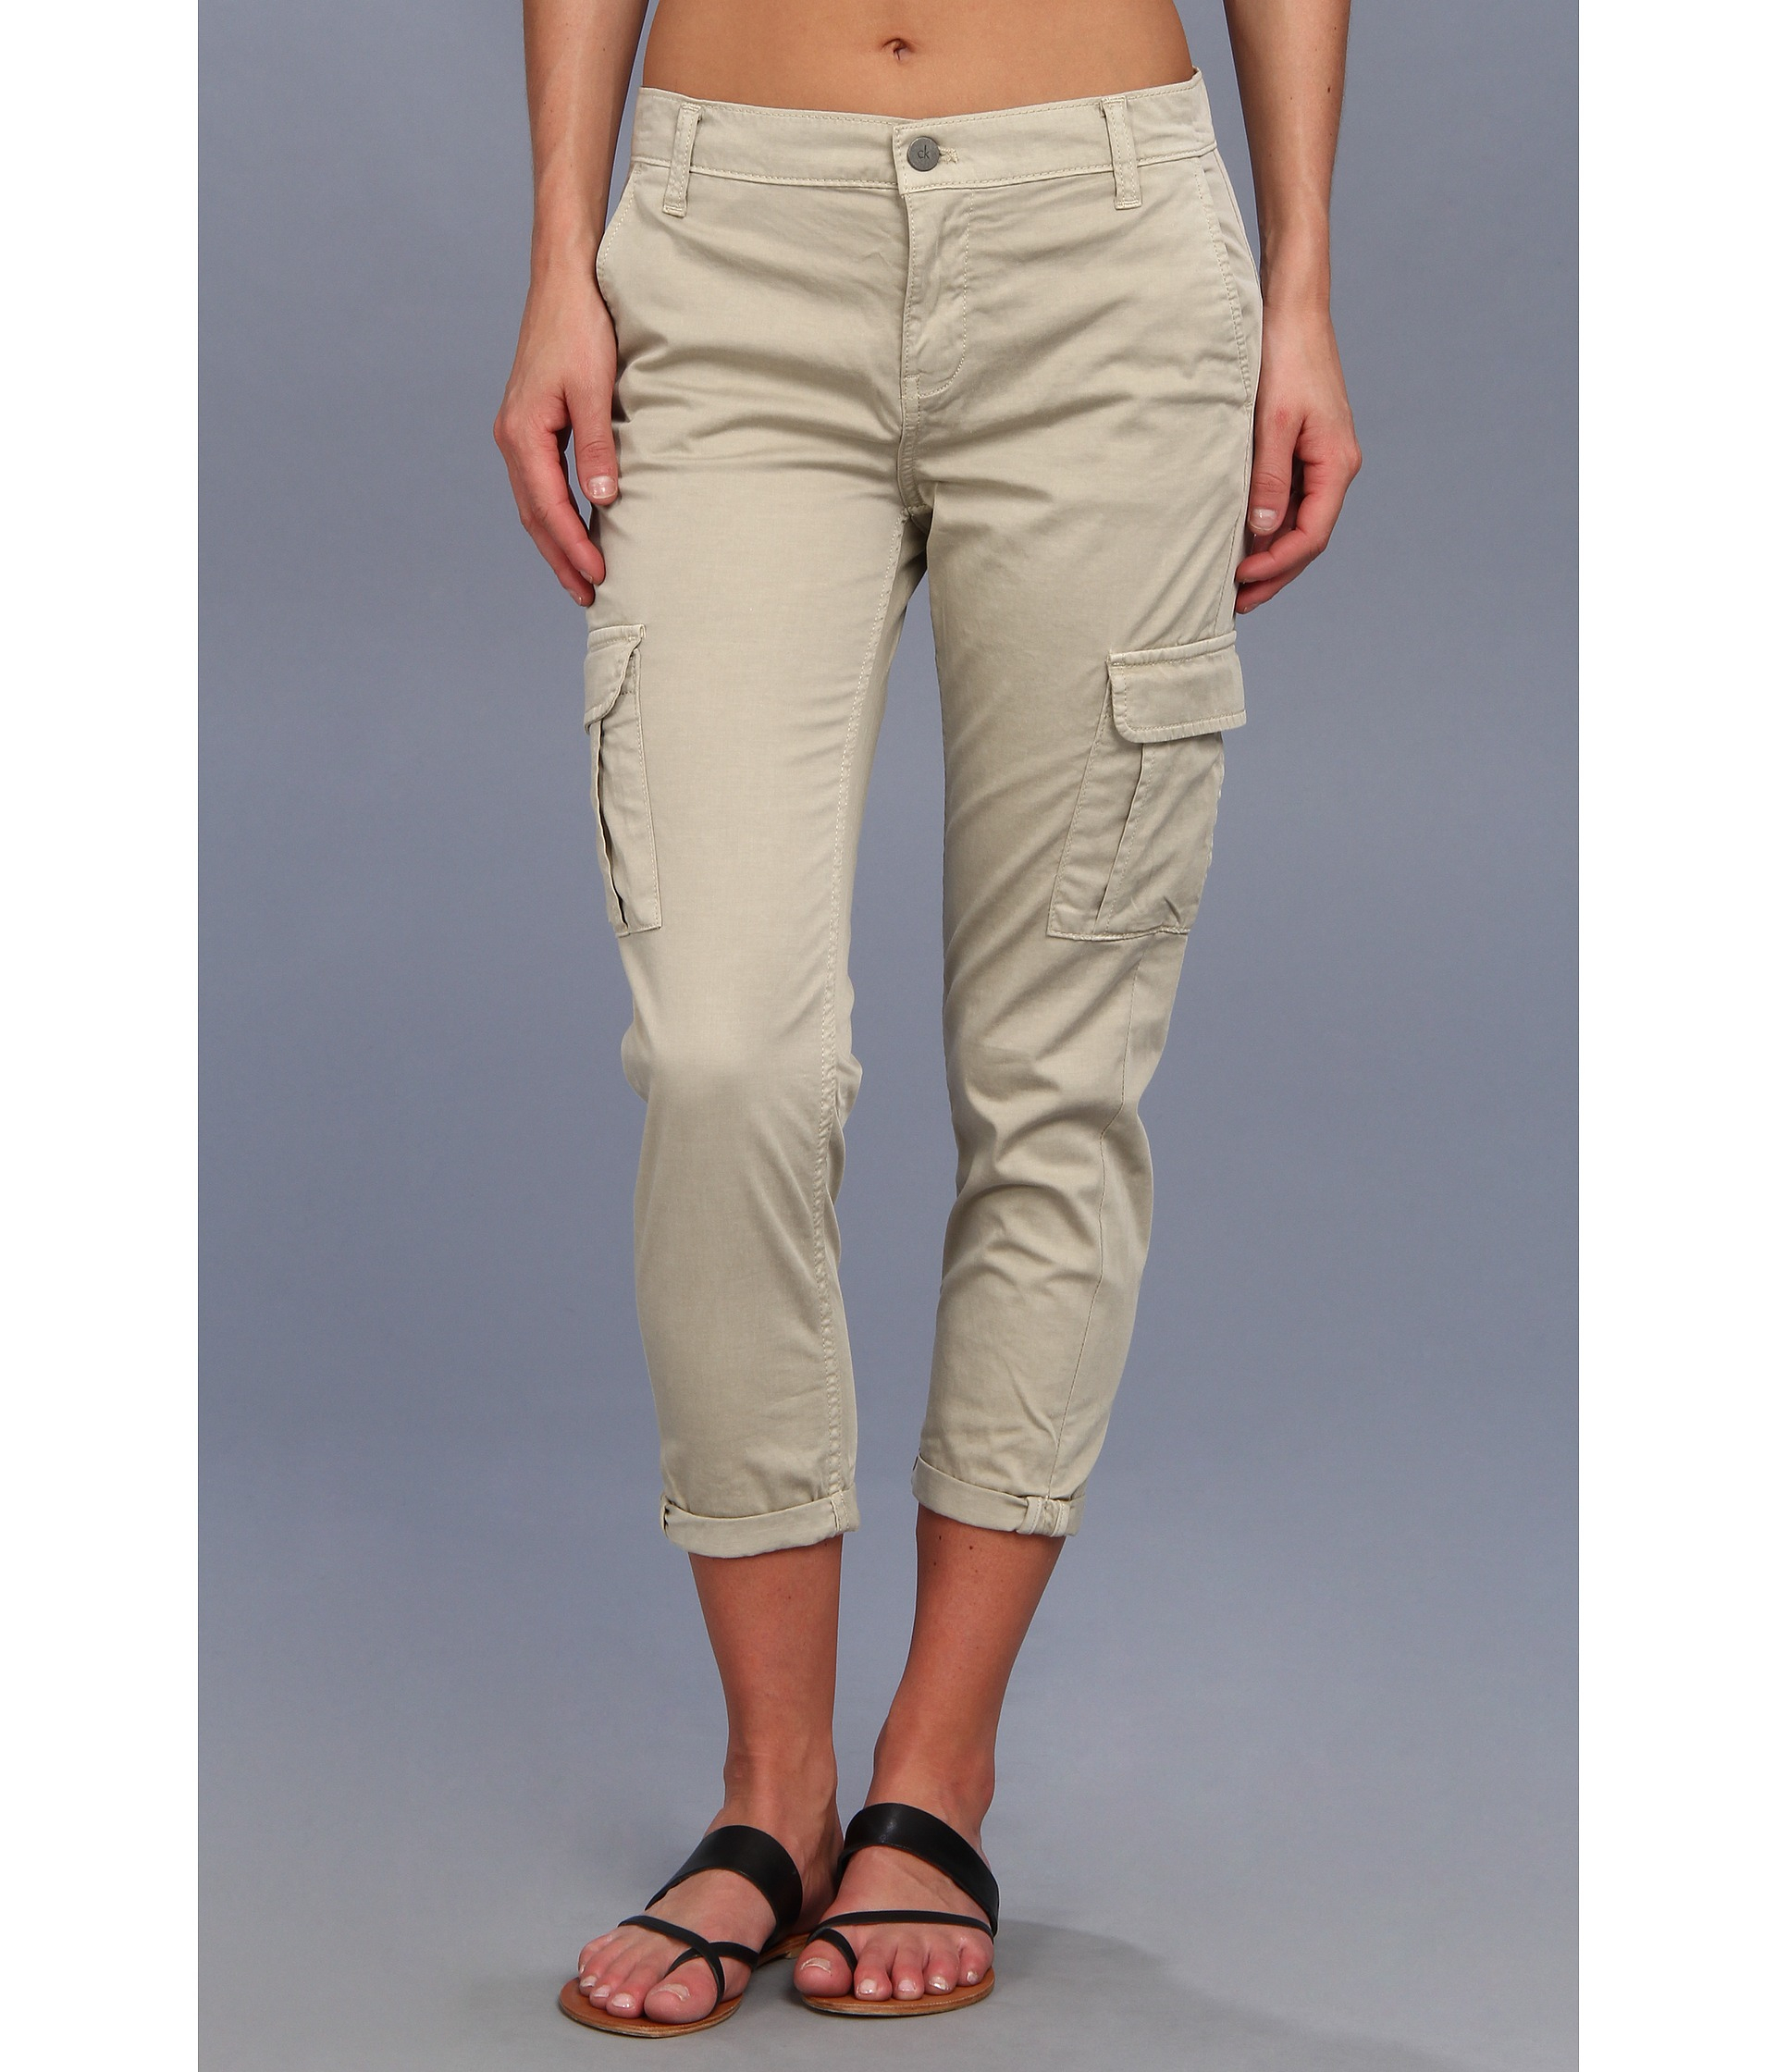 Fantastic Calvin Klein Drawstring Cargo Pants In Multicolor Chicory  Save 50